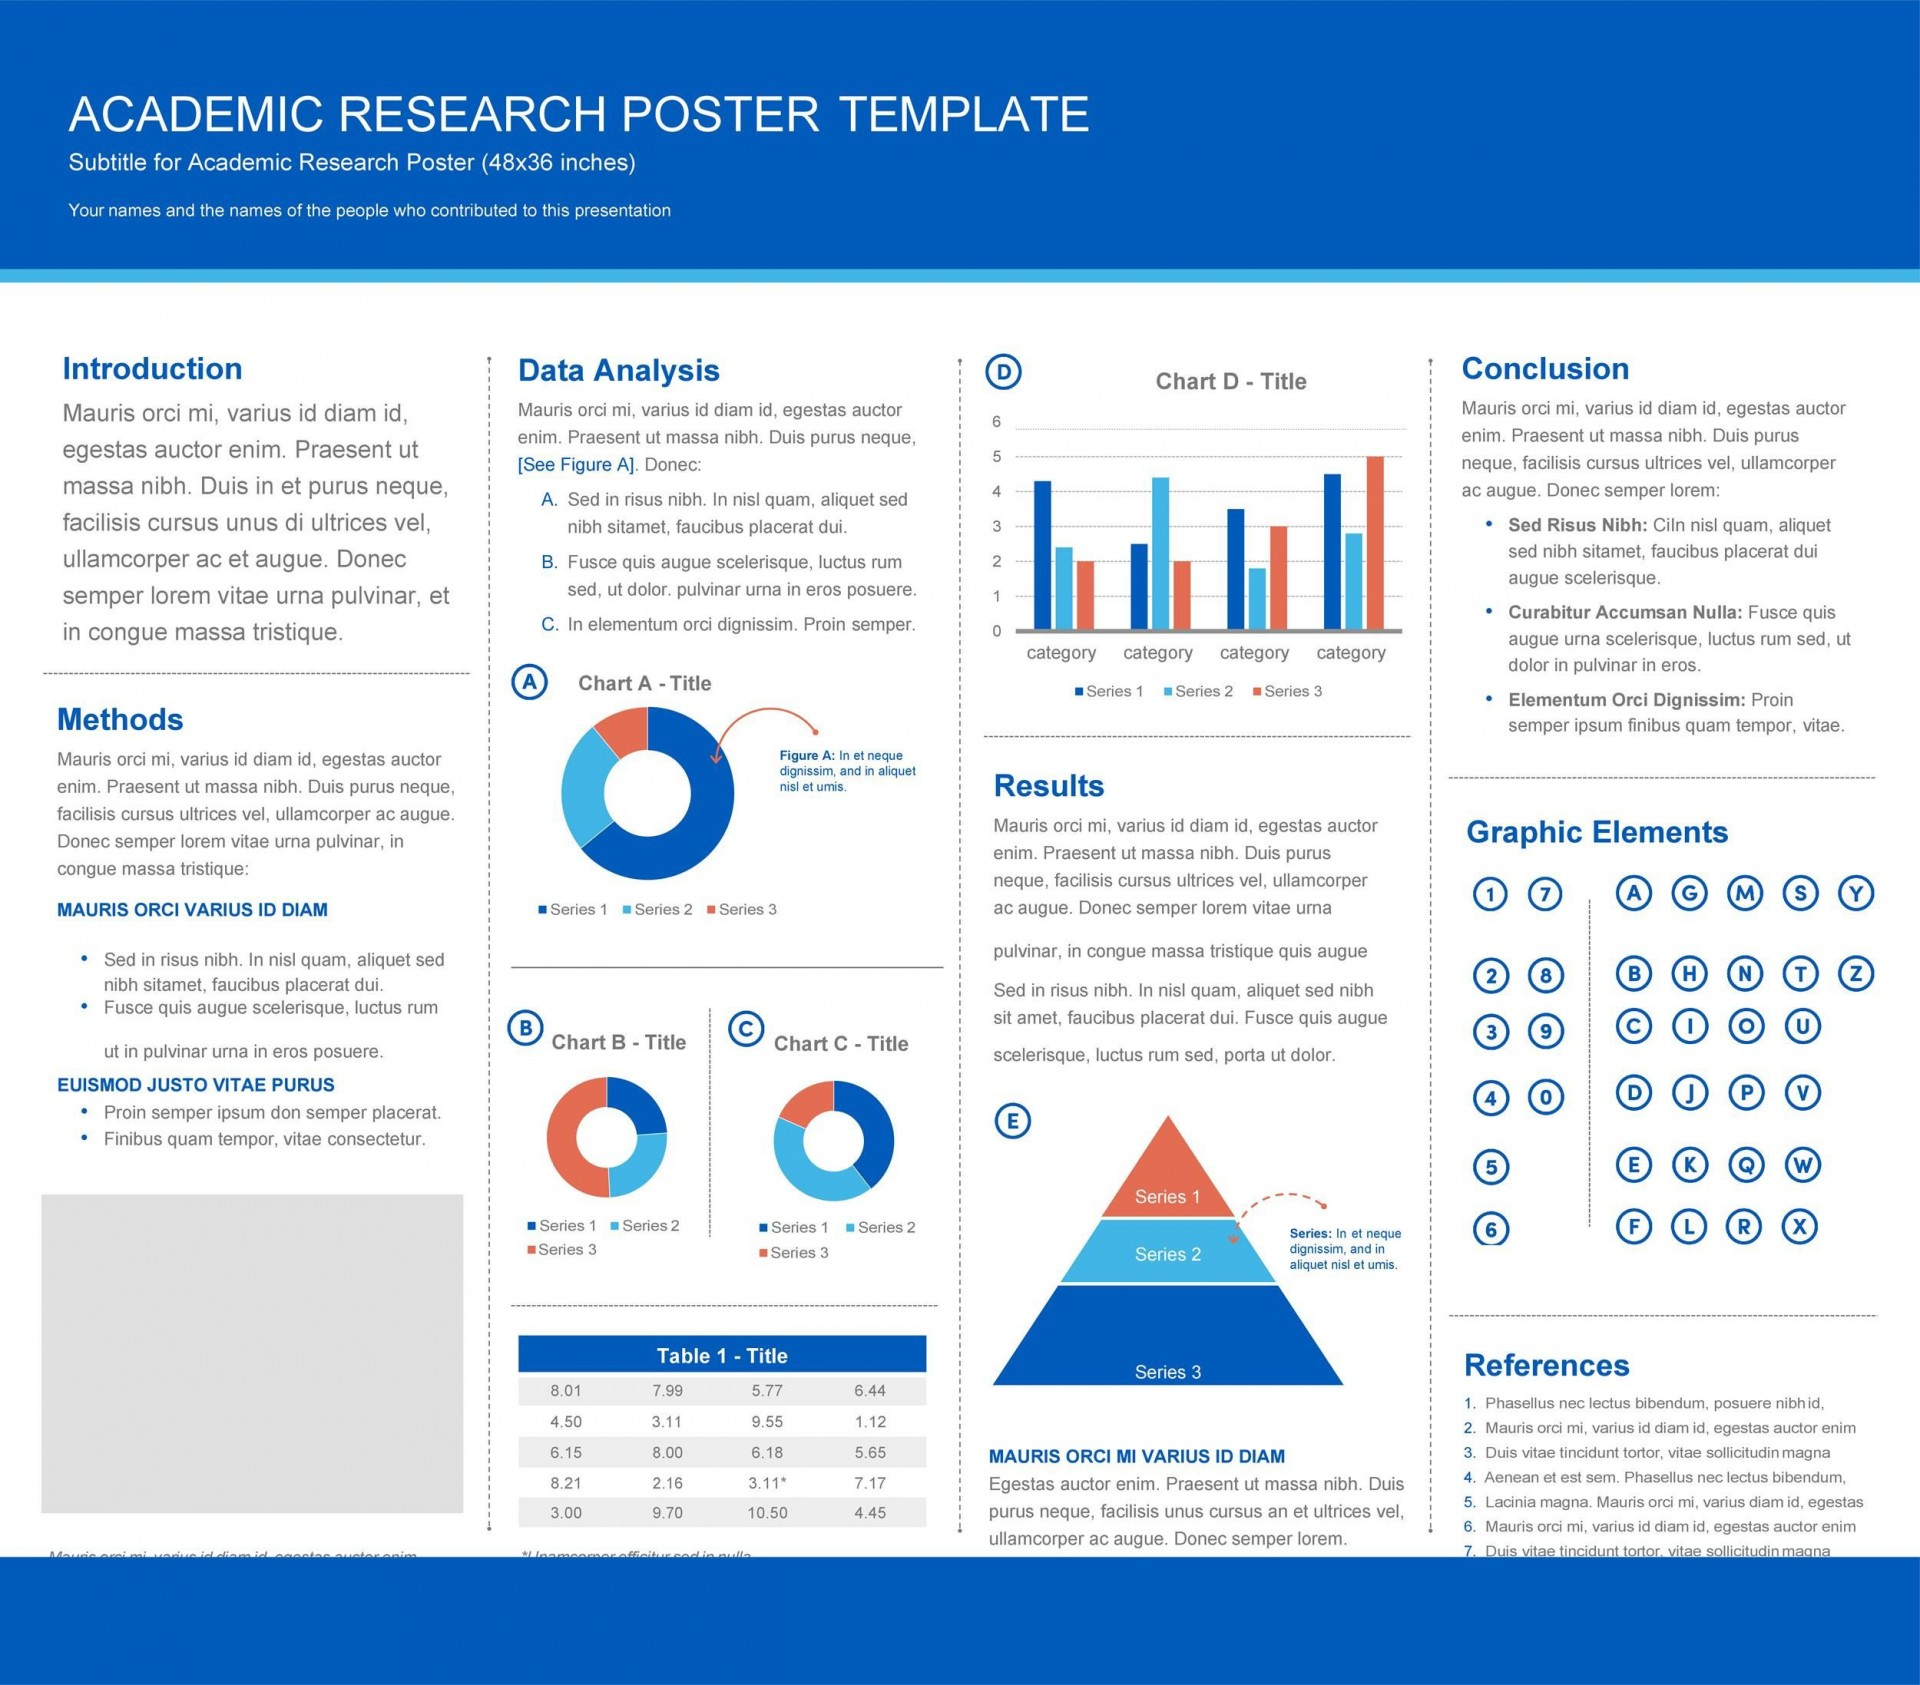 010 Fascinating Scientific Poster Presentation Template Free Download High Definition 1920